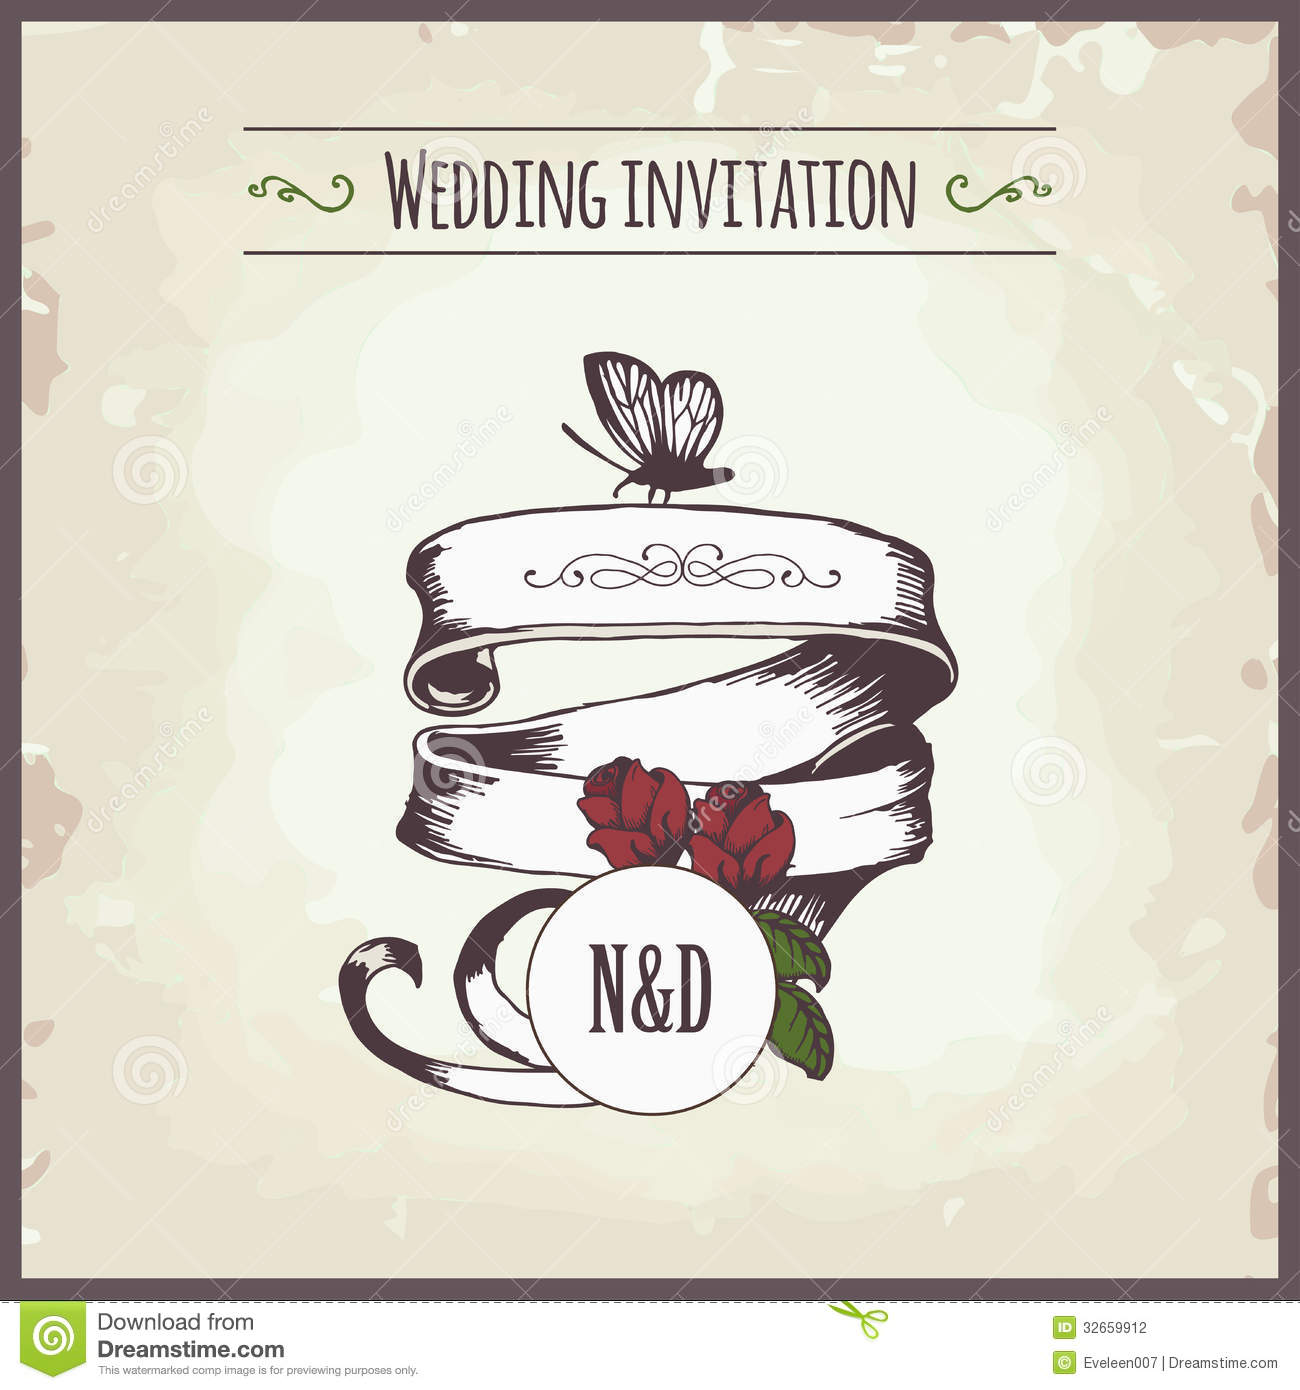 stock photography wedding invitation card template butterfly background image butterfly wedding invitations Wedding invitation